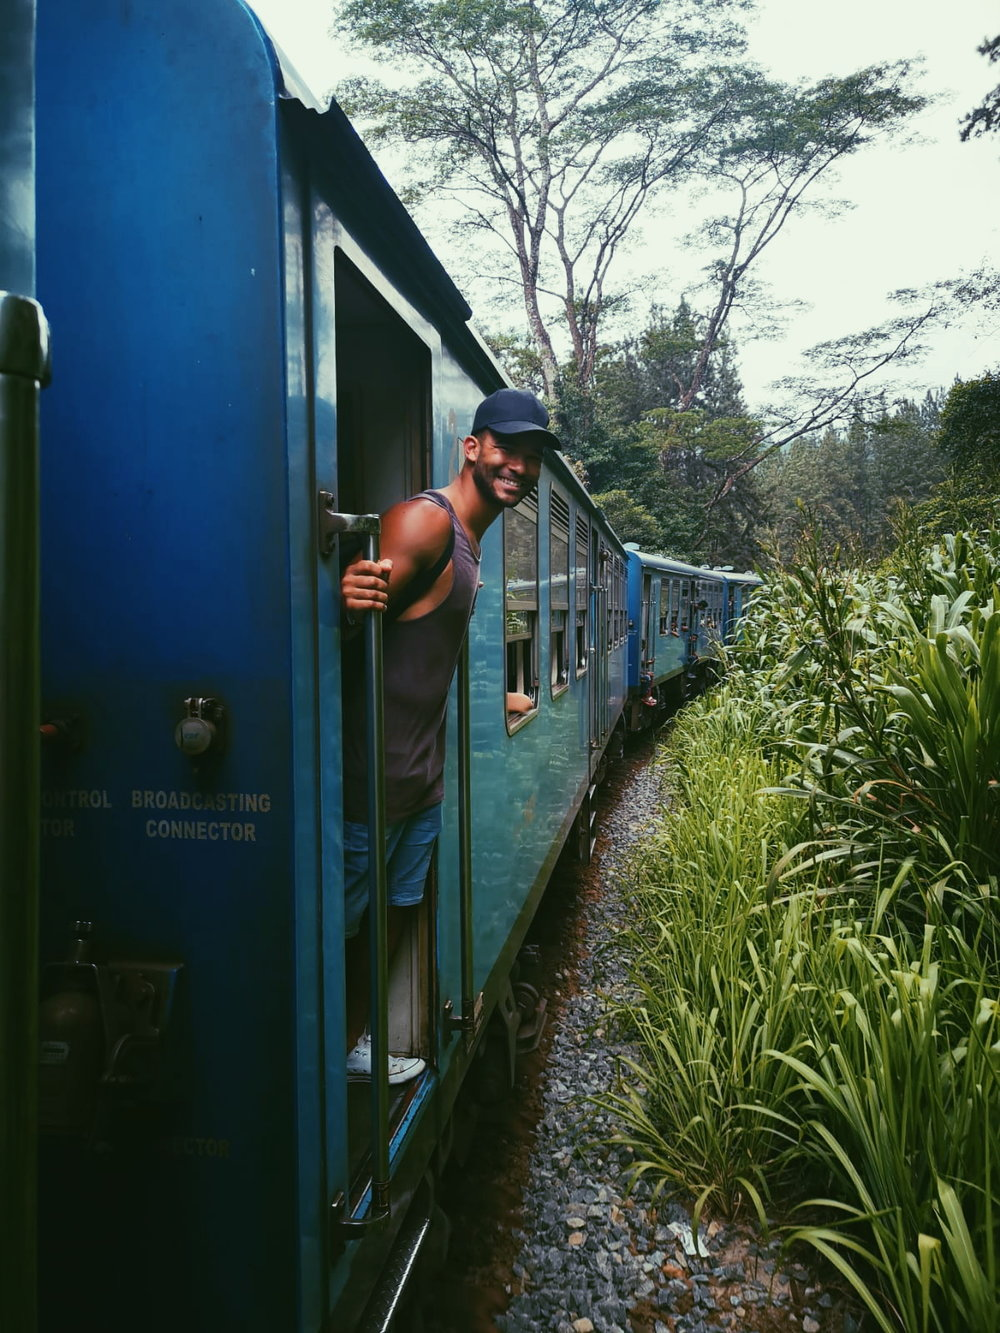 invite-to-paradise-sri-lanka-holiday-honeymoon-specialists-customer-feedback-elin-jordan-luce-train-door-lean.JPG